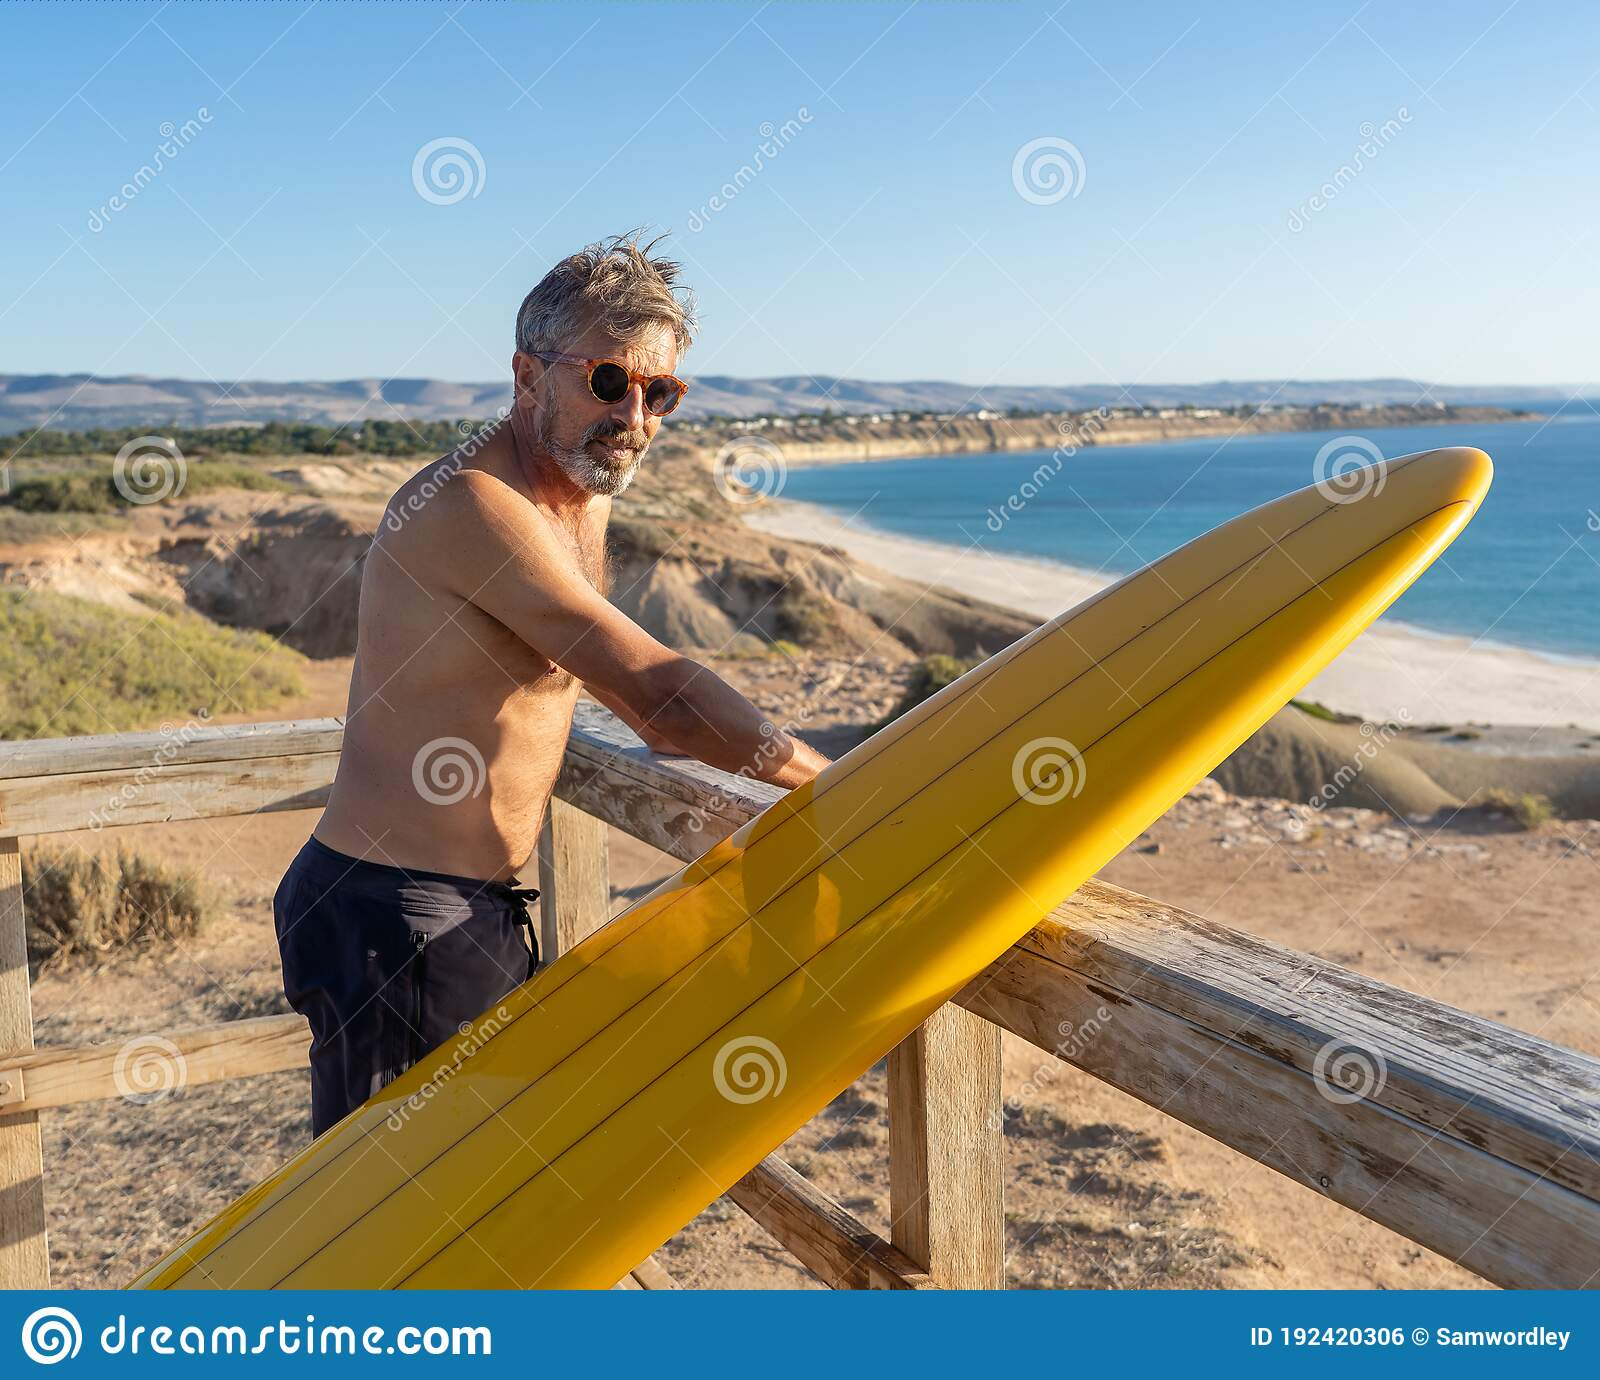 Portrait Of Mature Senior Surfer Looking At The Ocean With Vintage Surfboard On An Empty Beach Stock Photo Image Of Lifestyle Mature 192420306